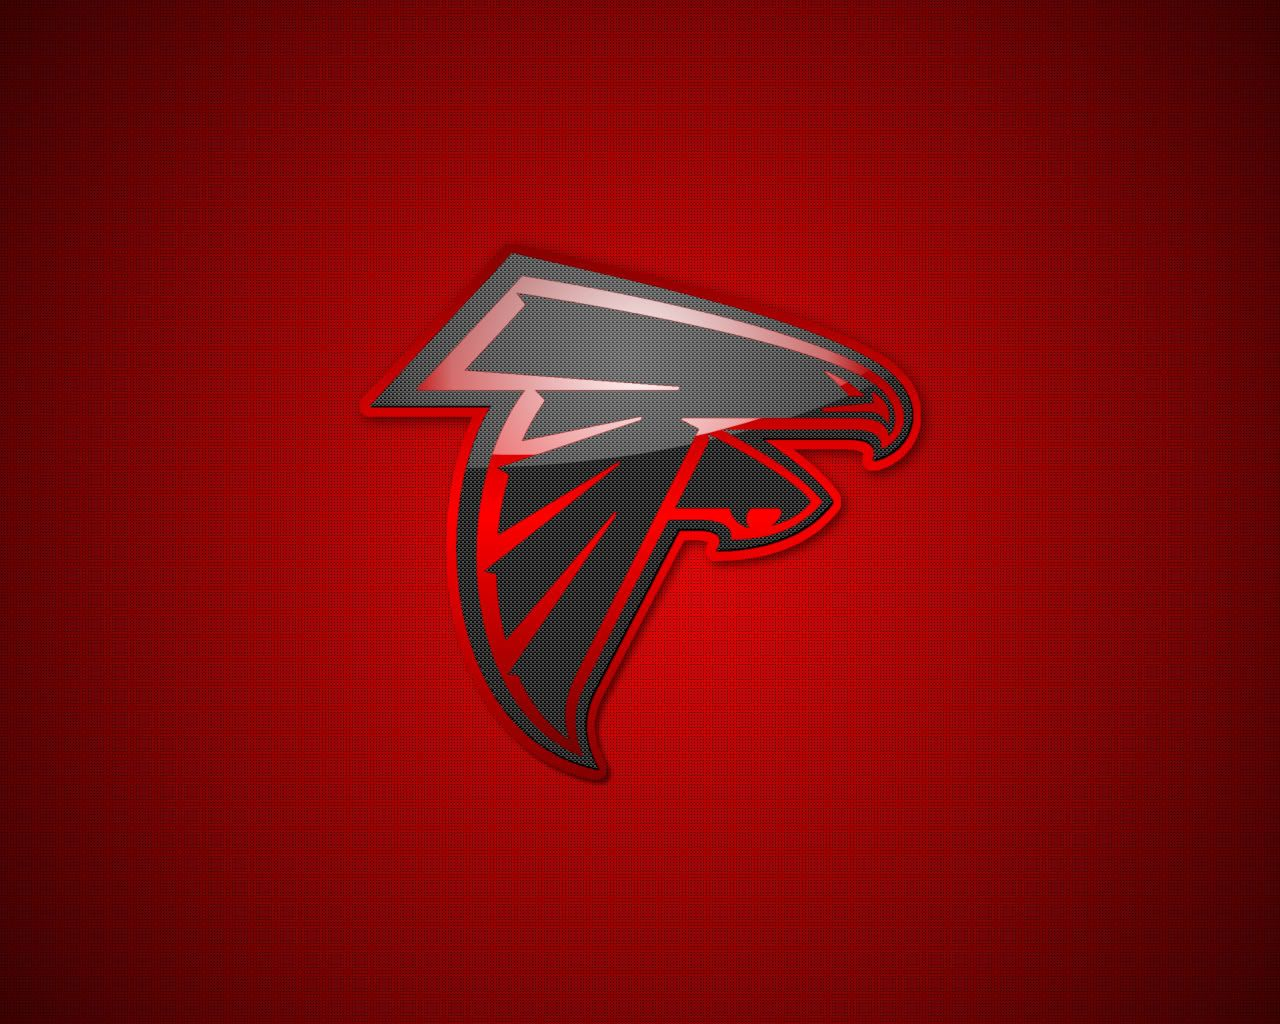 Atlanta Falcons Carbon Photo Atlanta Falcons Wallpaper Atlanta Falcons Atlanta Falcons Pictures